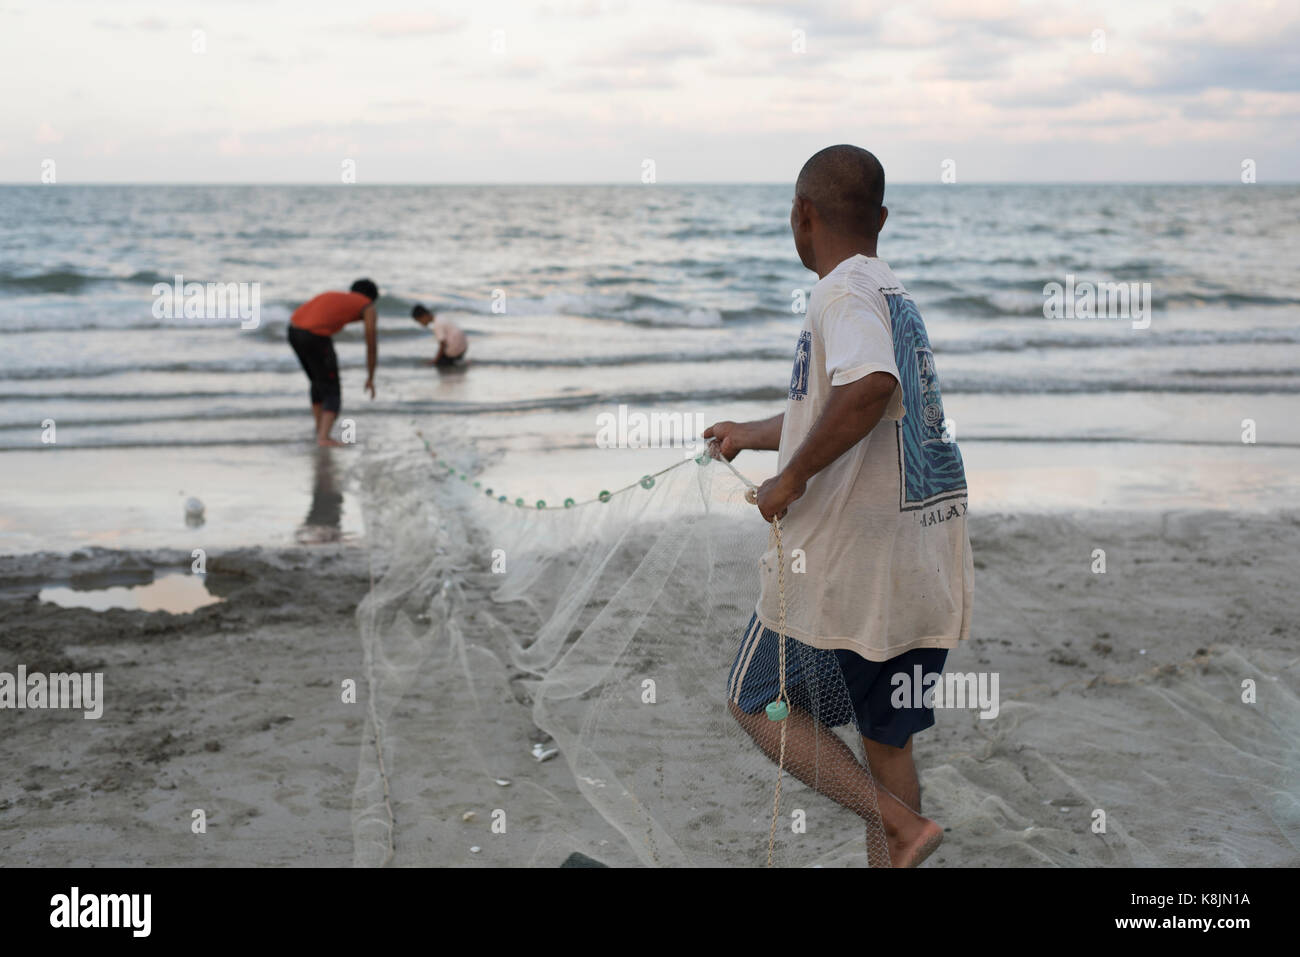 fishermen are fishing using fishing net by the beach in the evening - Stock Image